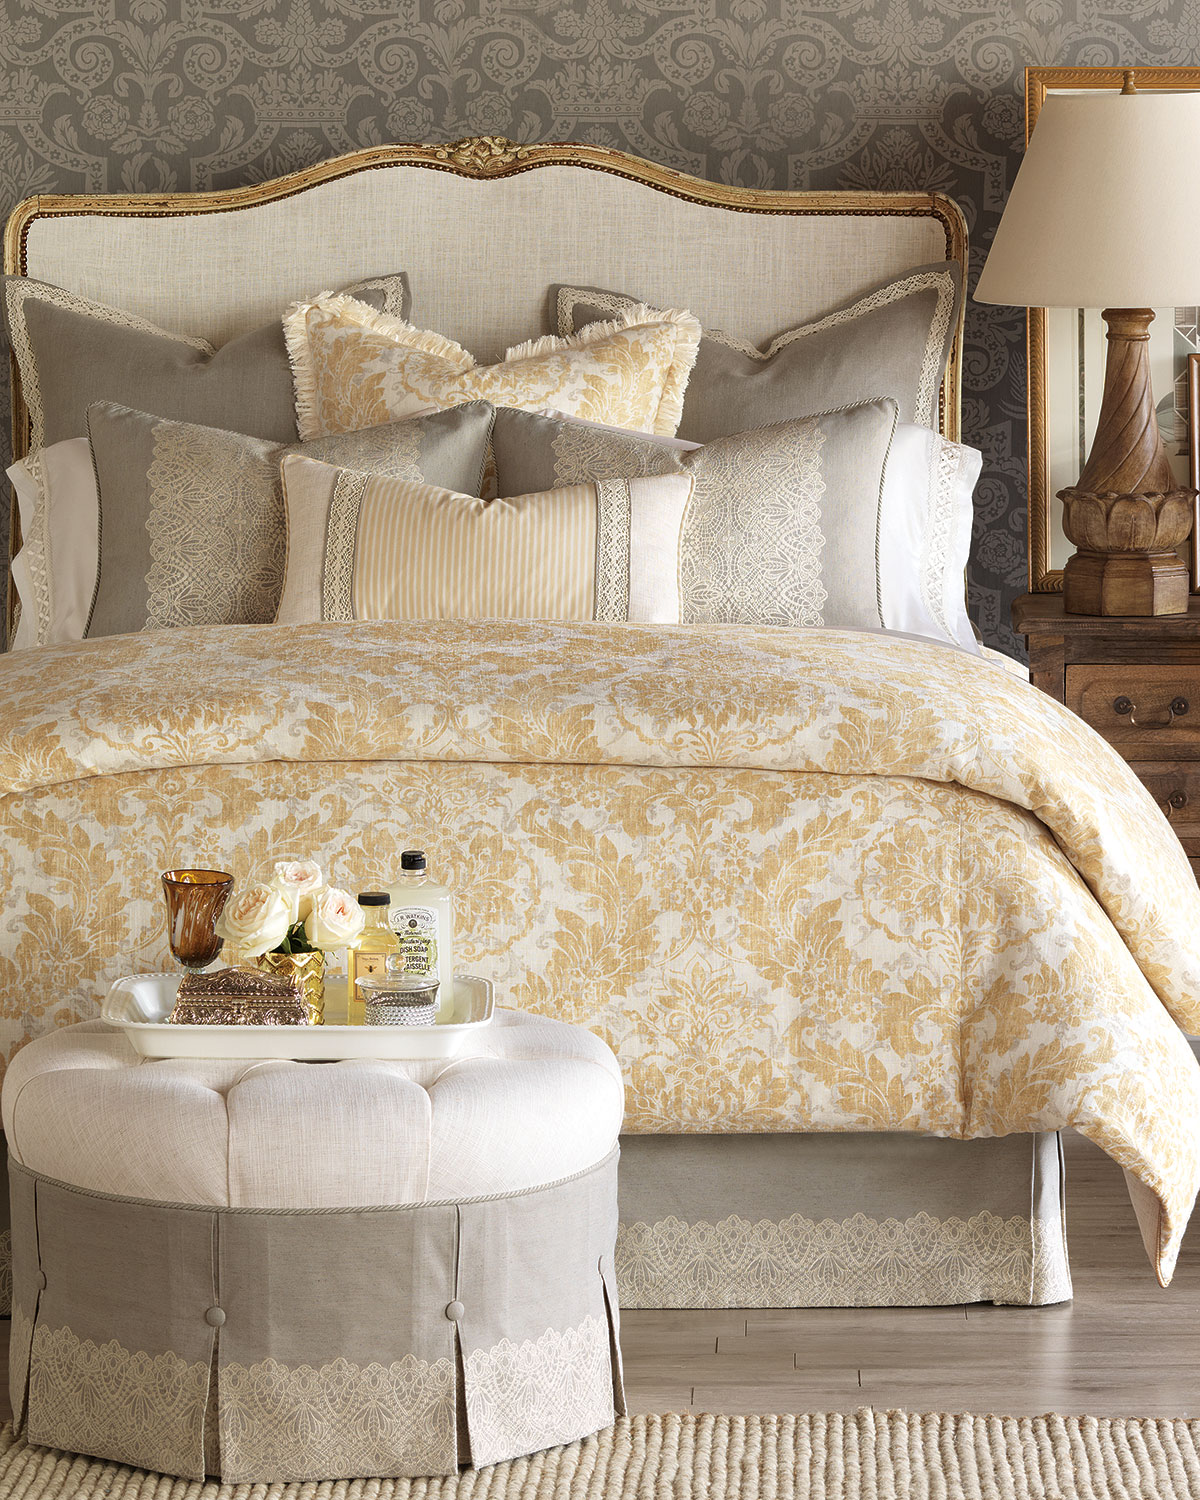 Eastern Accents Oversized Queen Sabelle Duvet Cover Neiman Marcus